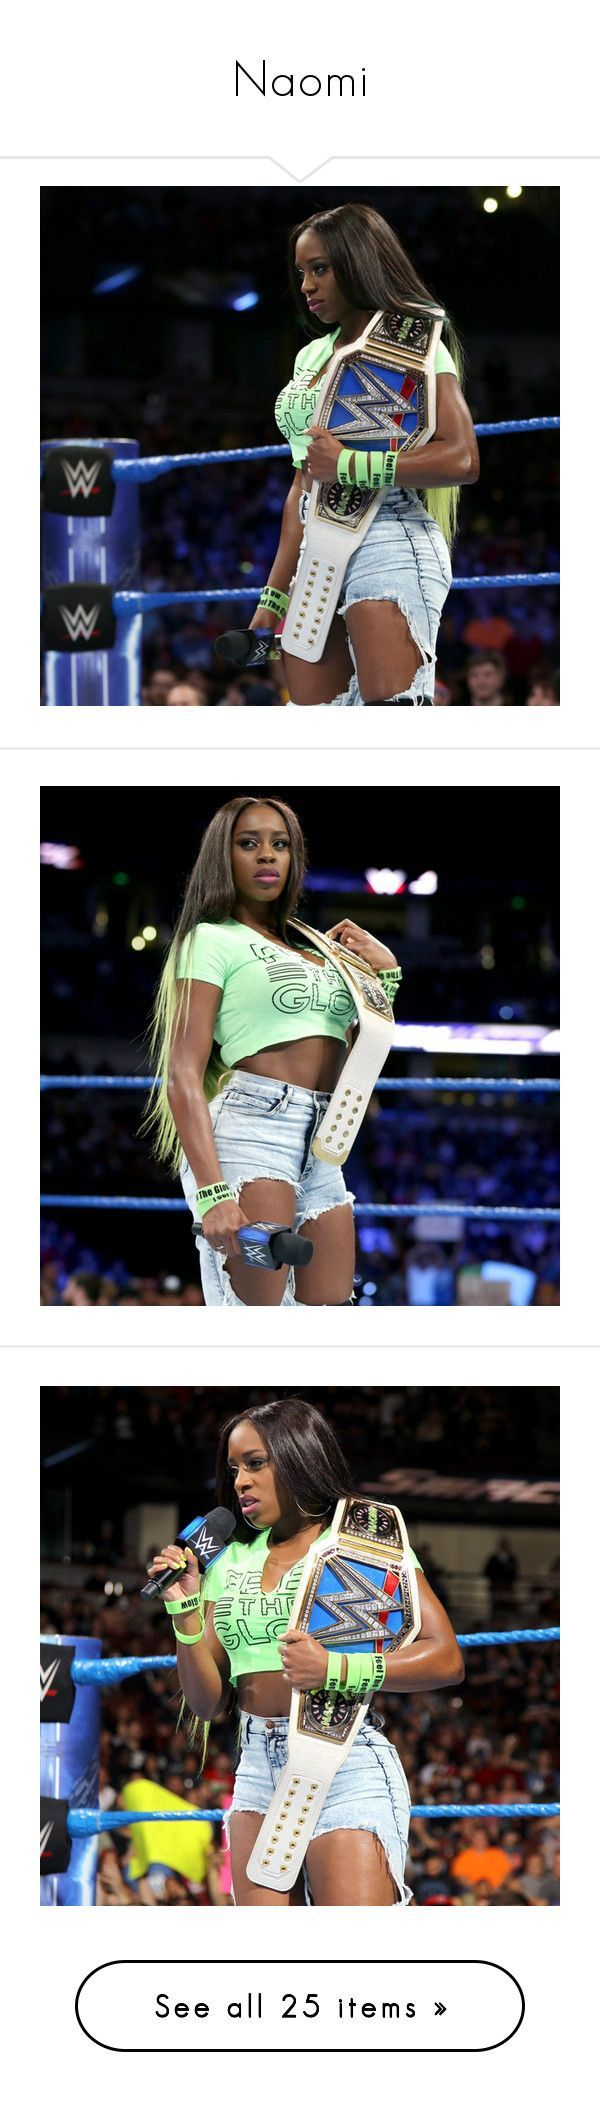 Naomi by amysykes-697  liked on Polyvore featuring home home decor wwe n